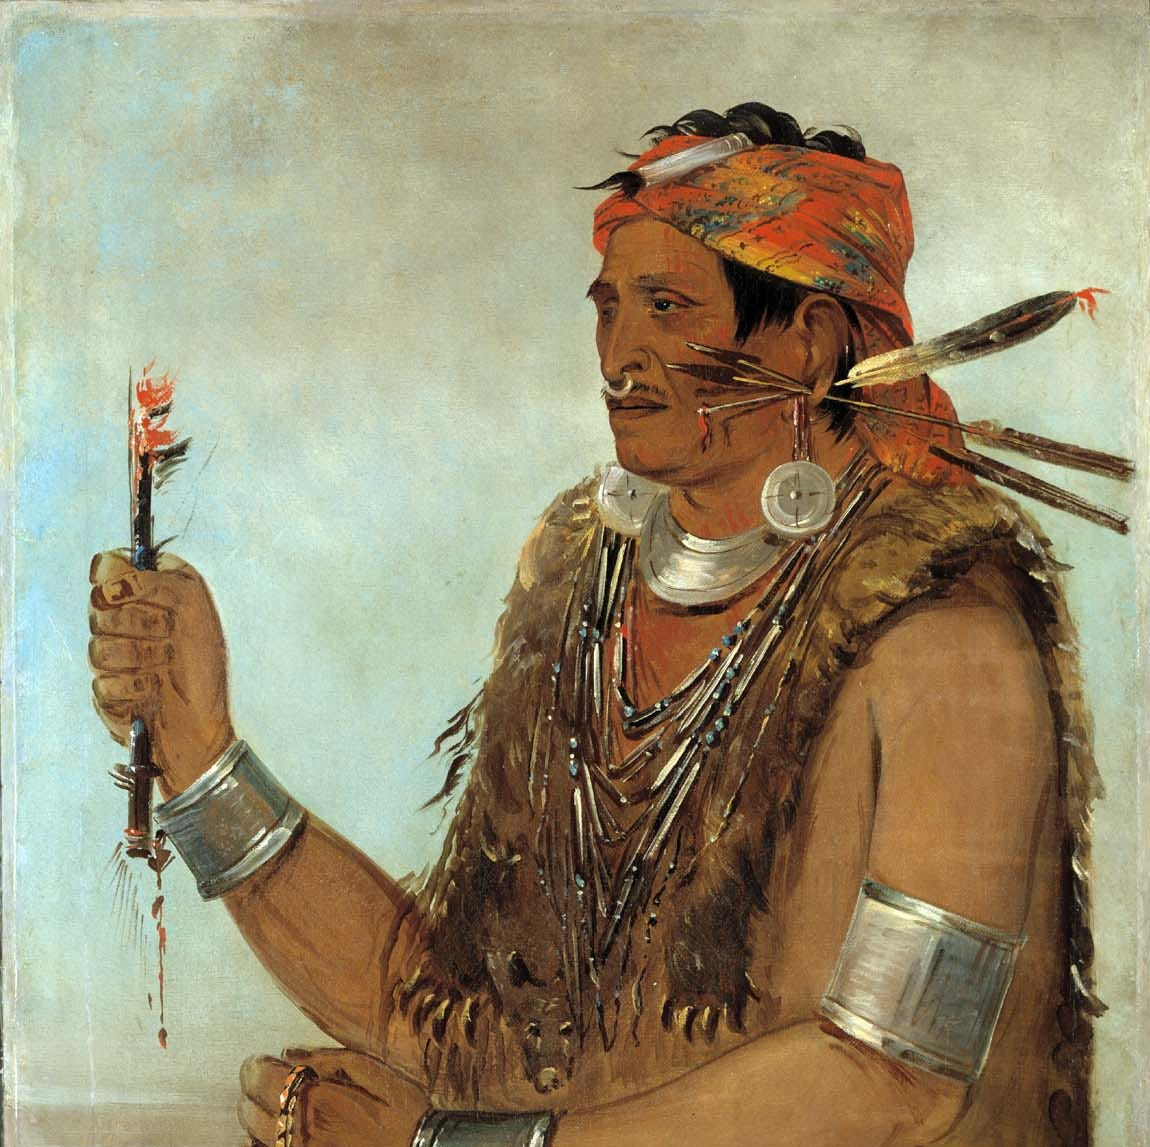 Bygone Muncie: Beata's teachings prompt purges among the Lenape